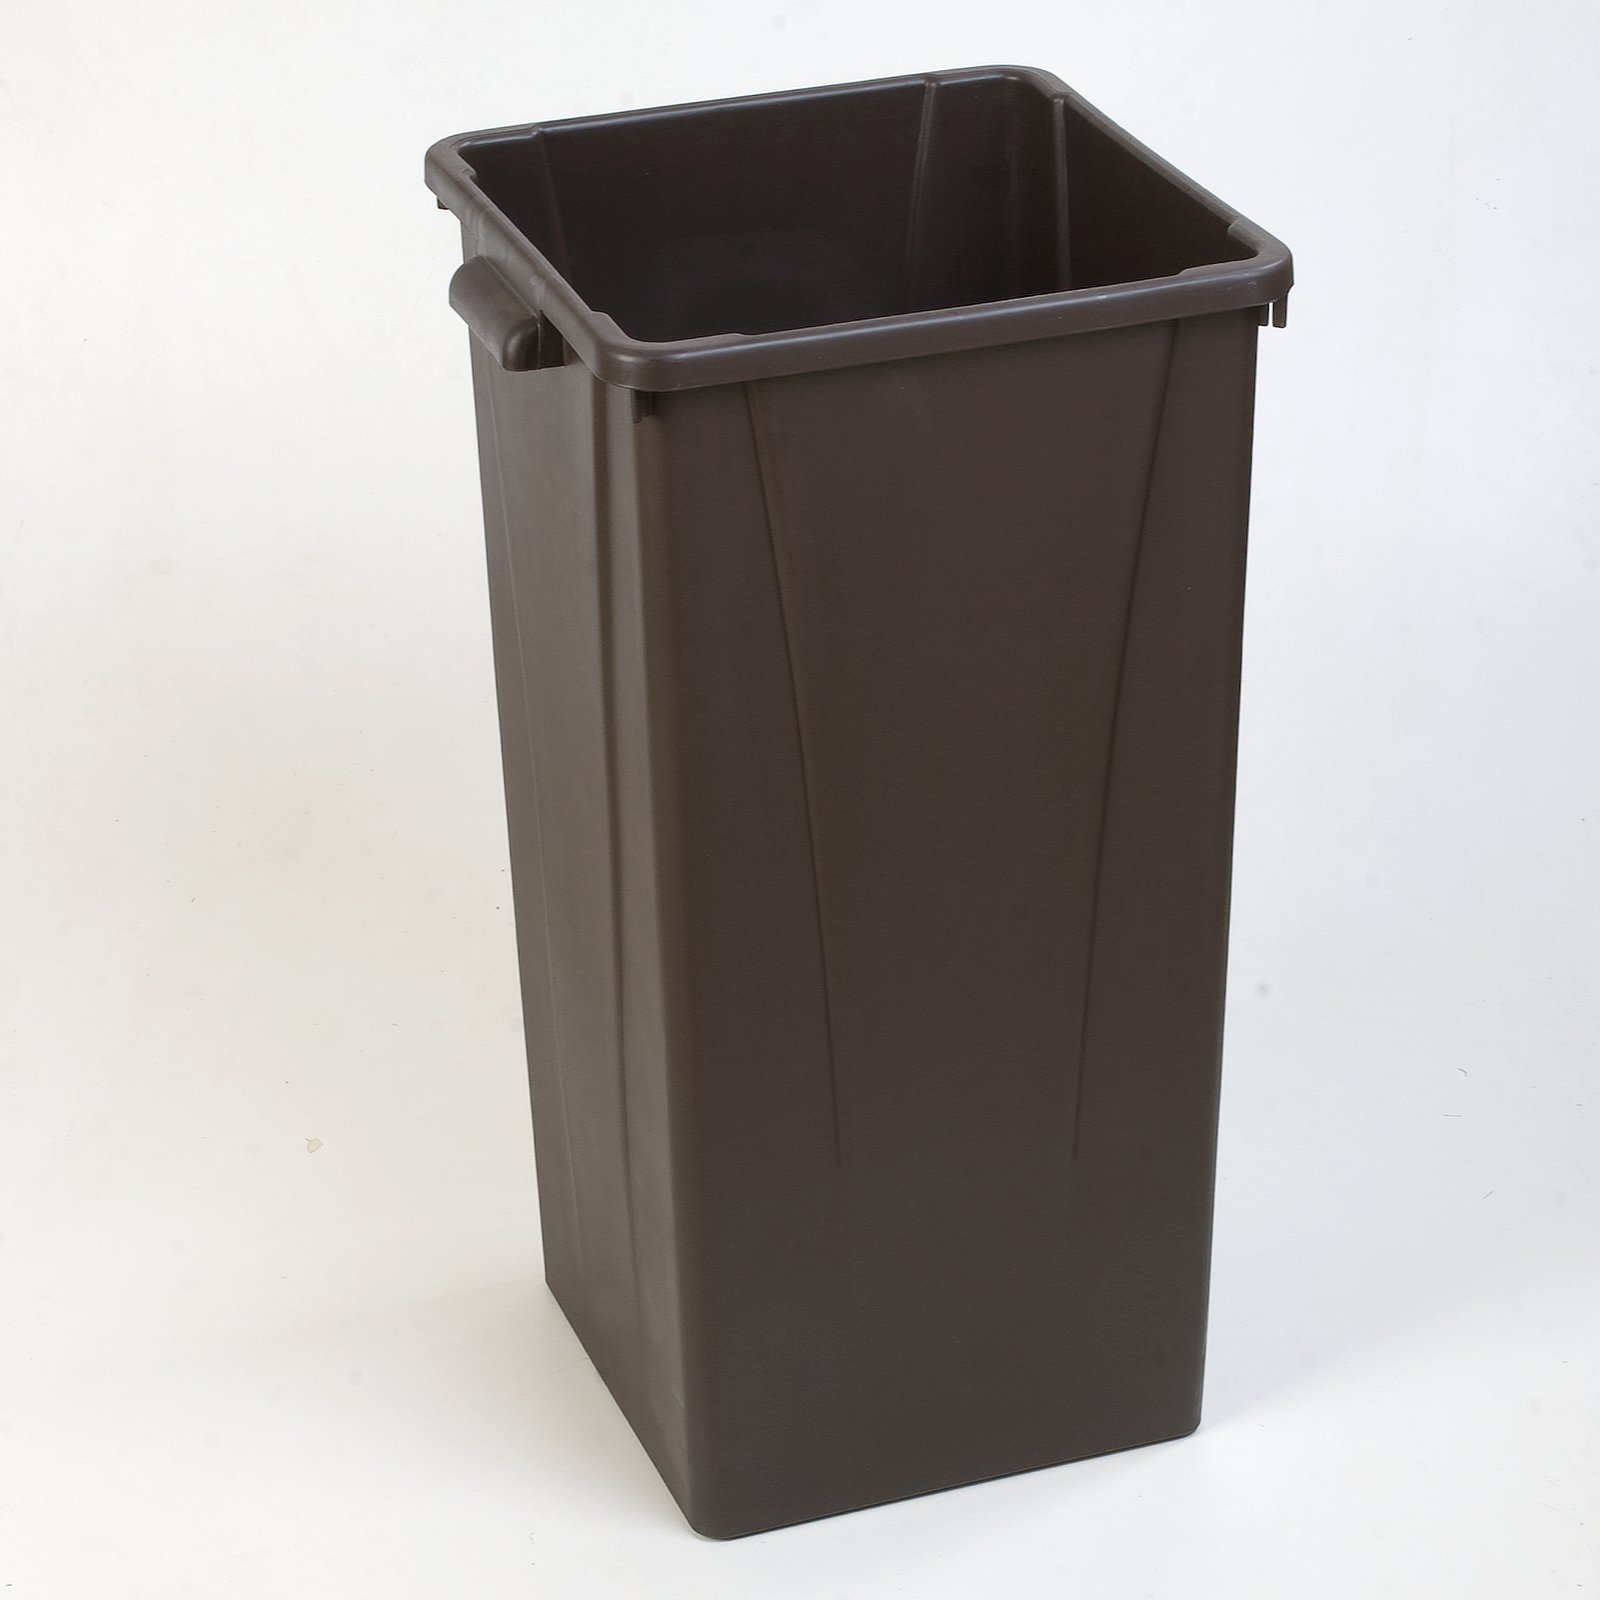 Tall Narrow Trash Can 34352369 Centurian Square Tall Waste Container Trash